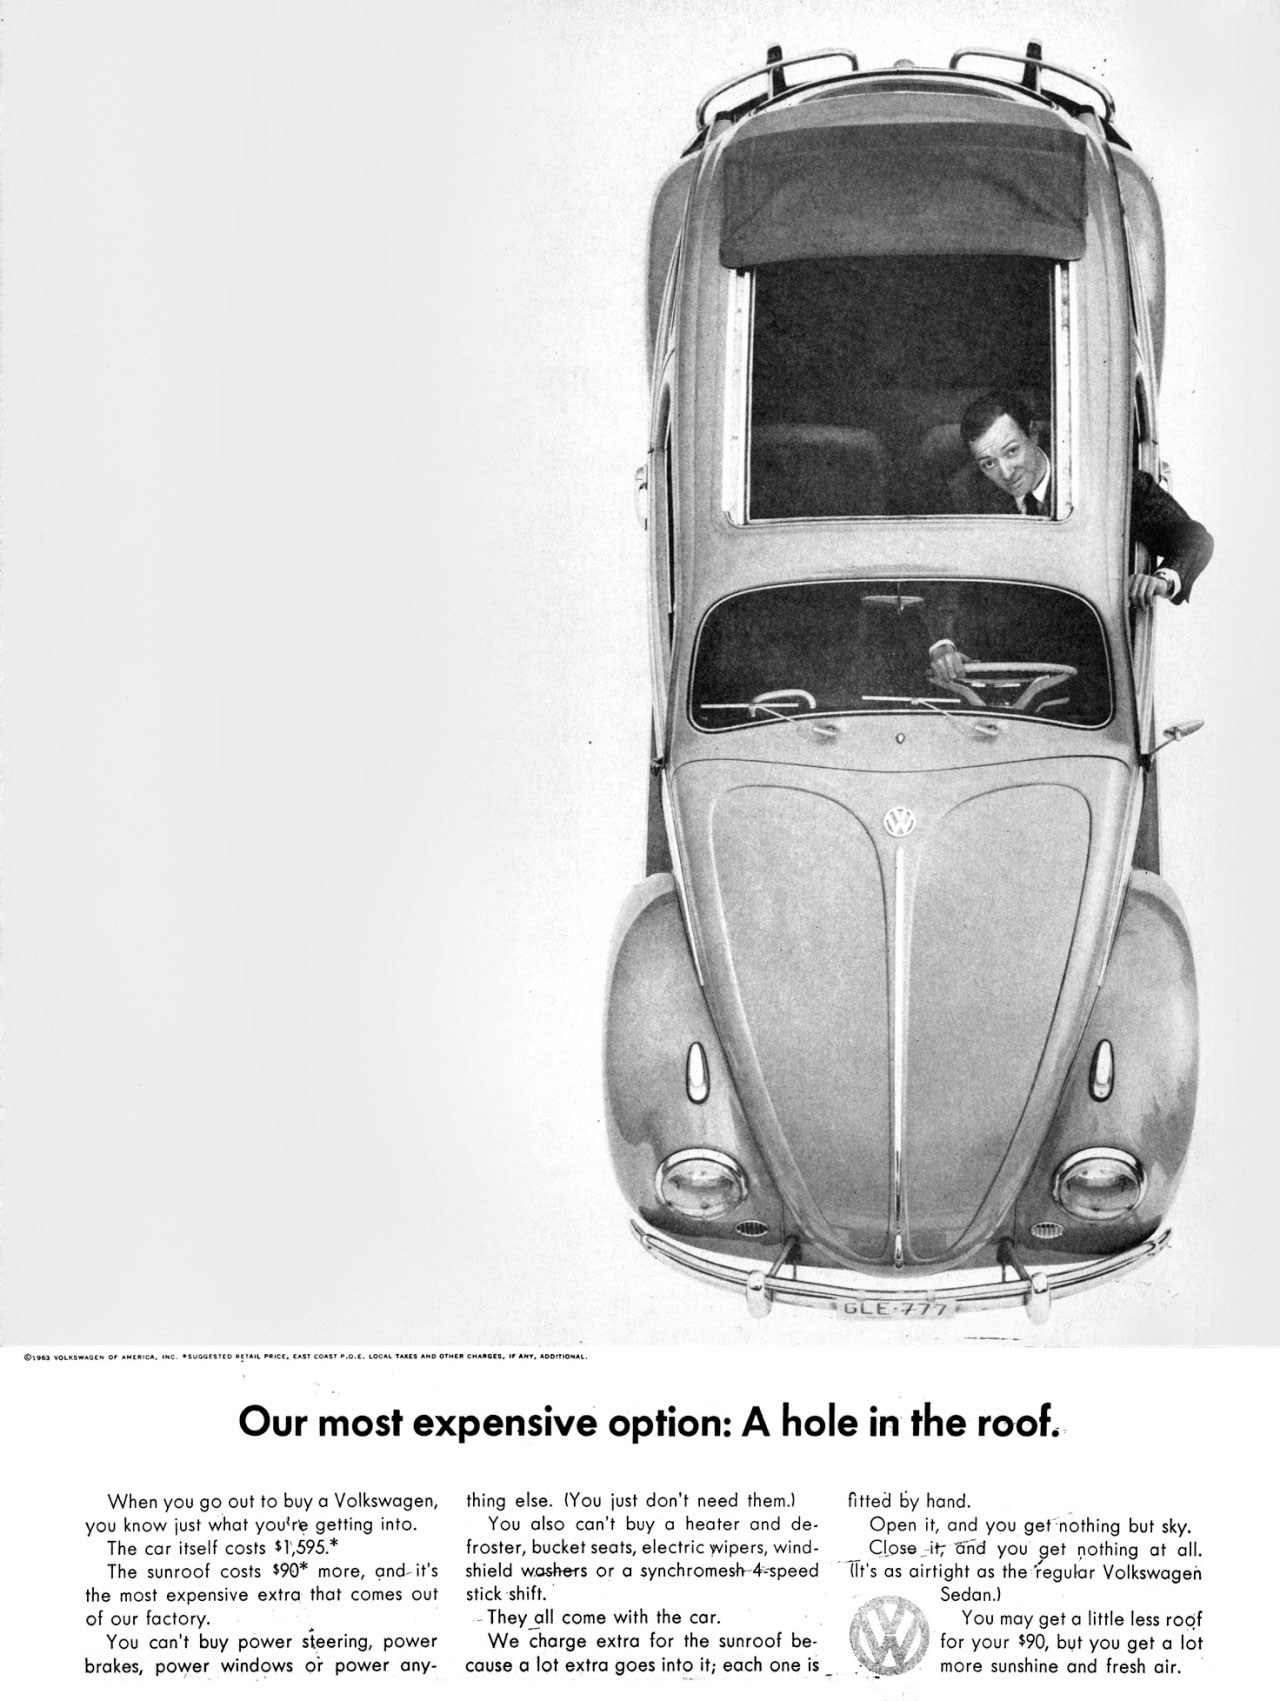 The Volkswagen Beetle's most expensive option: A hole in the roof.  When you go out to buy a Volkswagen, you know just what you're getting into. The car itself costs 51,595.* The sunroof costs 590* more, and- it's the most expensive extra that comes out of our factory. You can't buy power steering, power brakes, power windows or power any- thing else. You just don't need them.) You also can't buy a heater and de-froster, bucket seats, electric wipers, wind-shield washers or a synchromesh 4-speed stick shift. - They all come with the car. We charge extra for the sunroof be-cause a lot extra goes into it; each one is _  fitted by hand. Open it, and you get nothing but sky. Close_ it Odd you 9et nothing at all. iit's as airtight as the 'regular Volkswagen Sedan.) You may get a little less roof for your s90, but you get a lot more sunshine and fresh air.